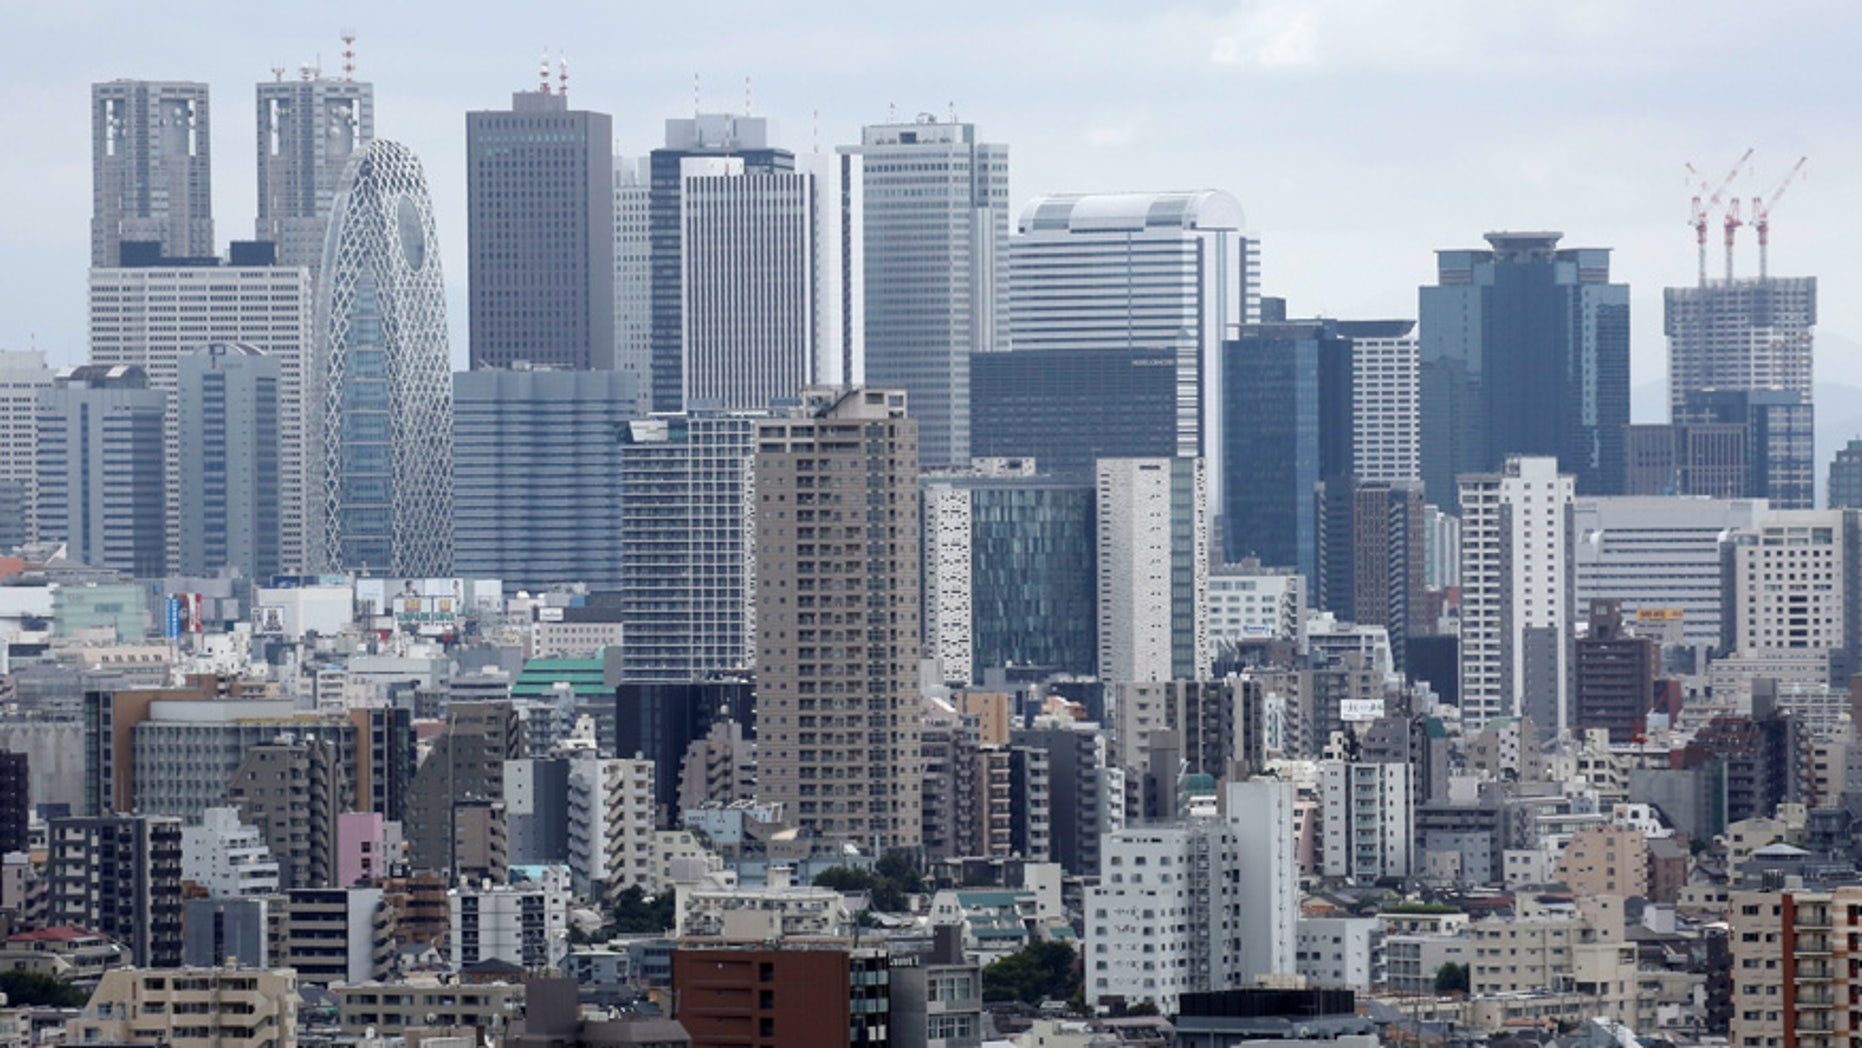 Commercial and residential buildings are pictured in Tokyo, Japan.